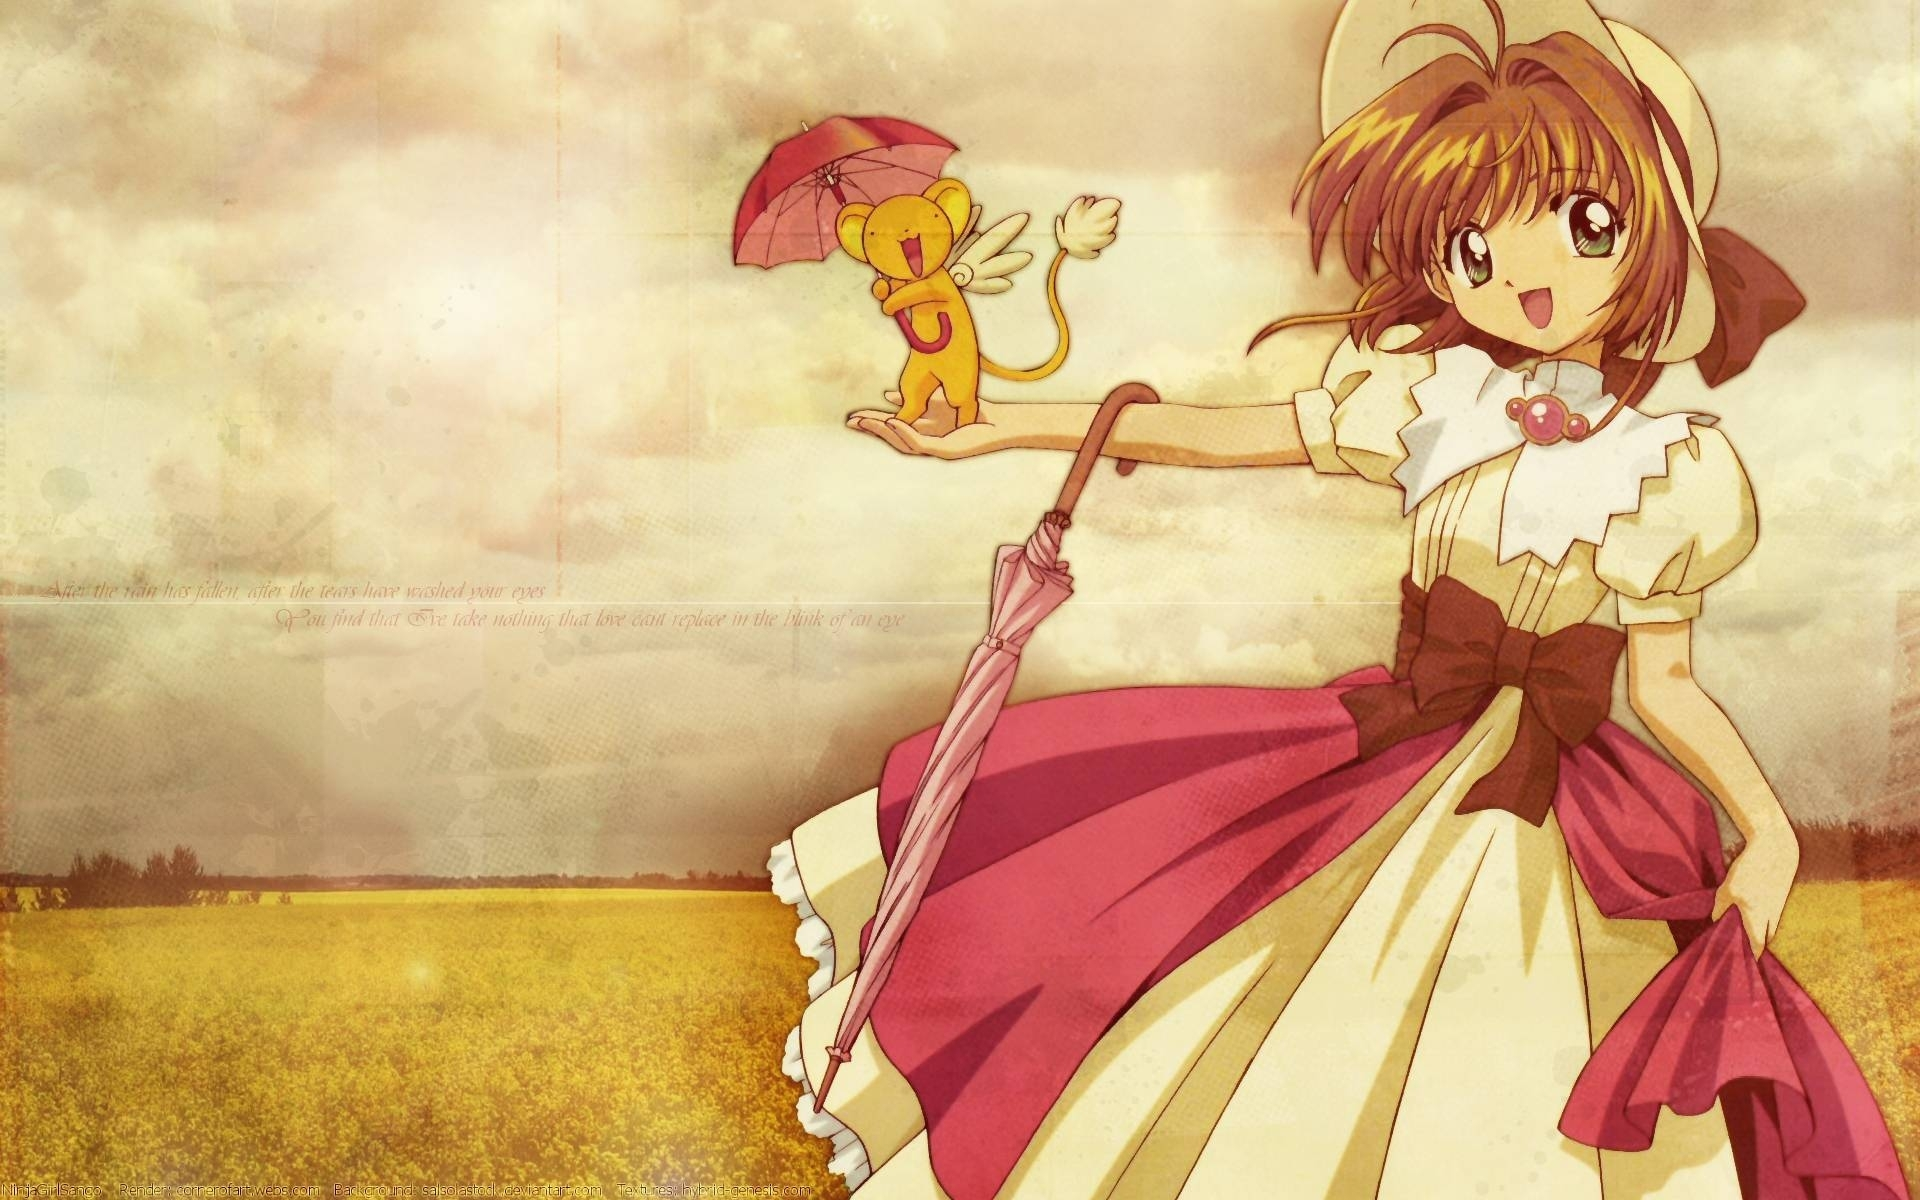 cardcaptor sakura wallpapers - wallpaper cave